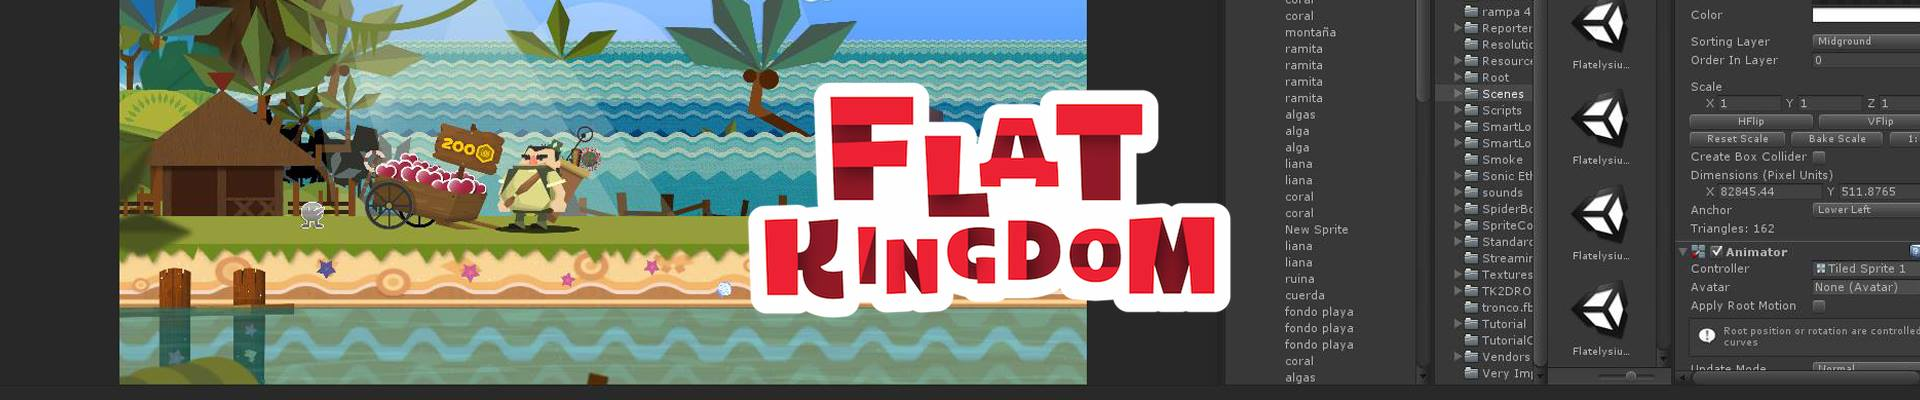 5 lessons I learned while developing our first game: Flat Kingdom.